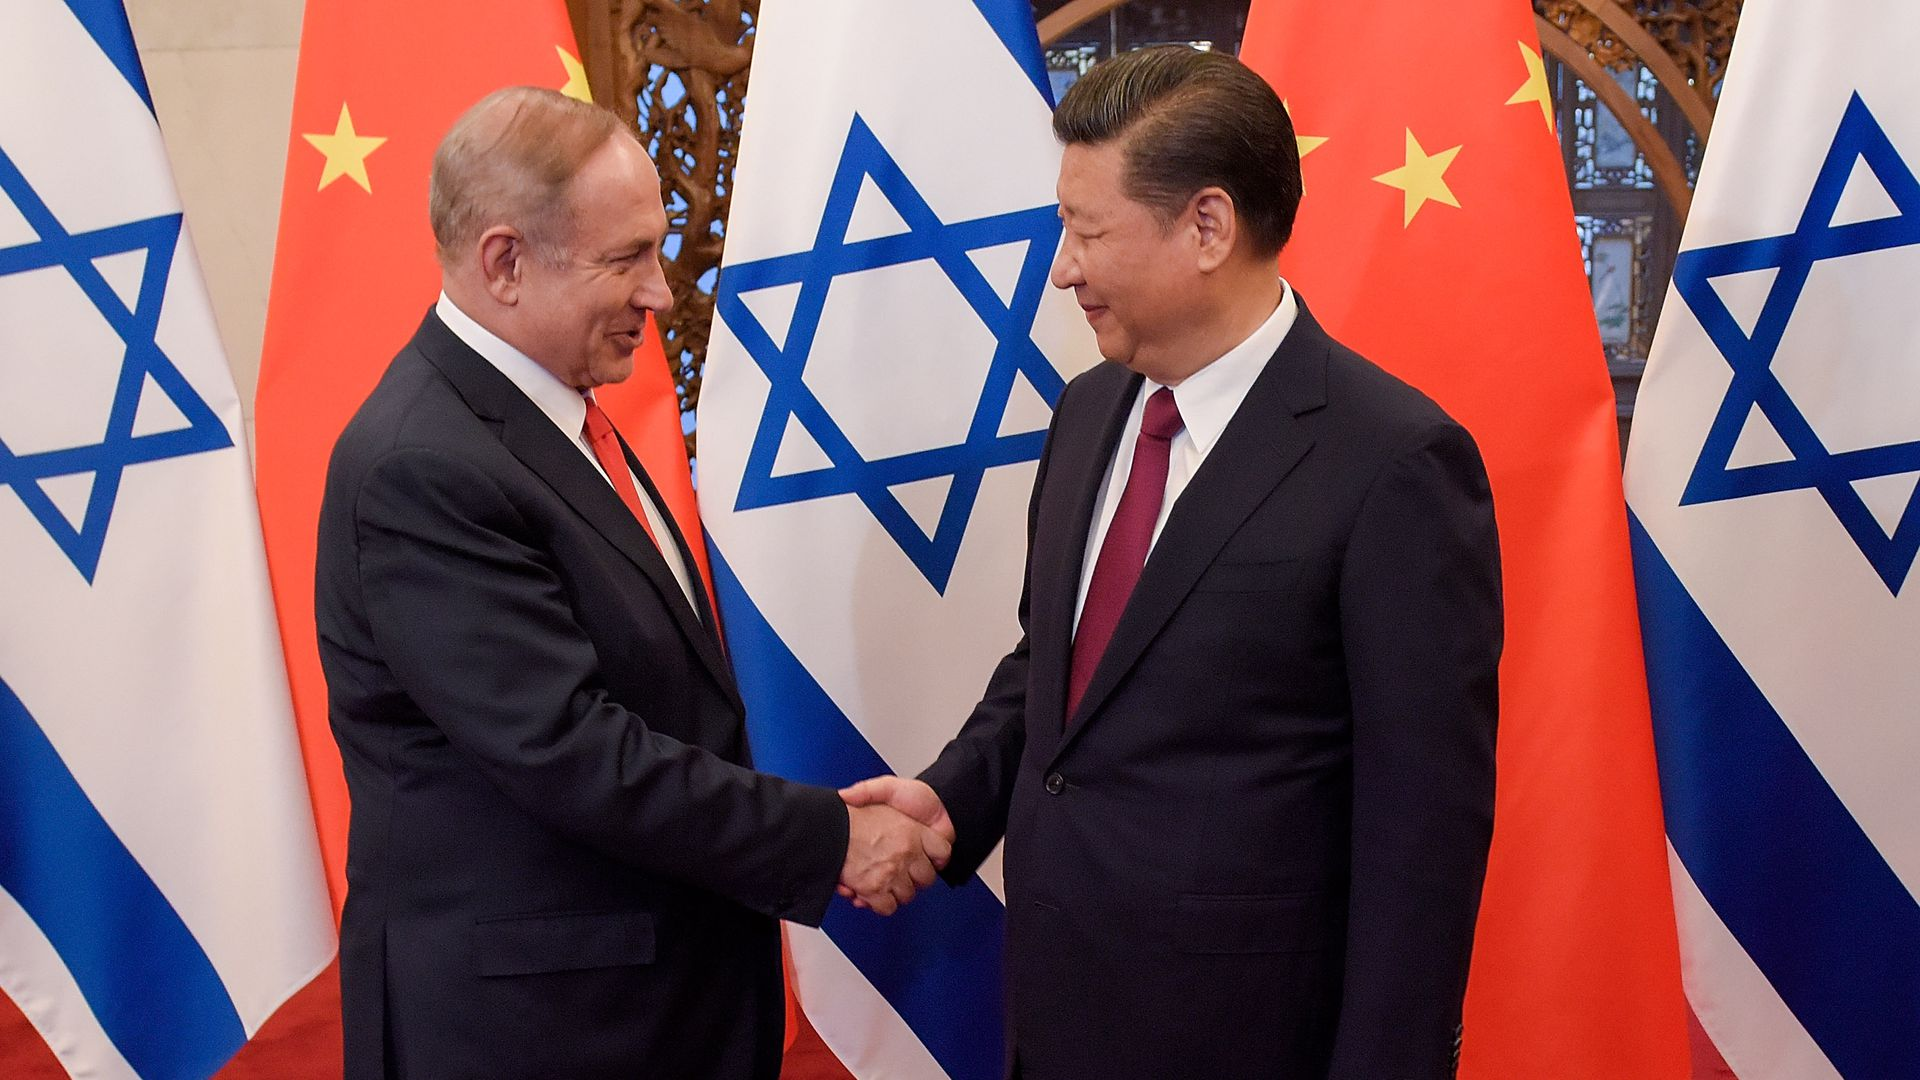 Netanyahu and Xi